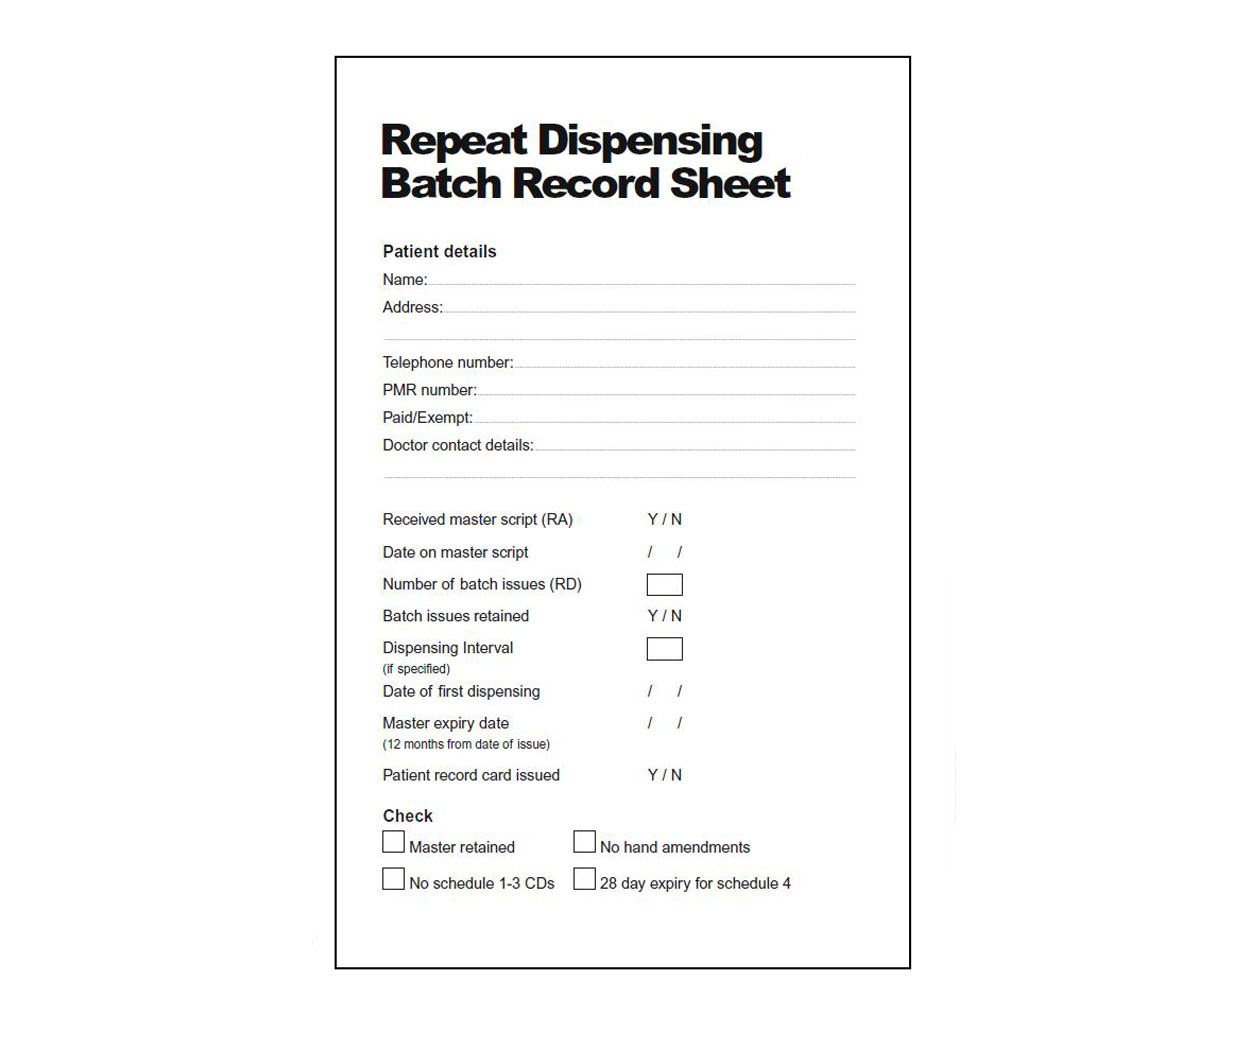 Repeat Dispensing Batch Record Pads